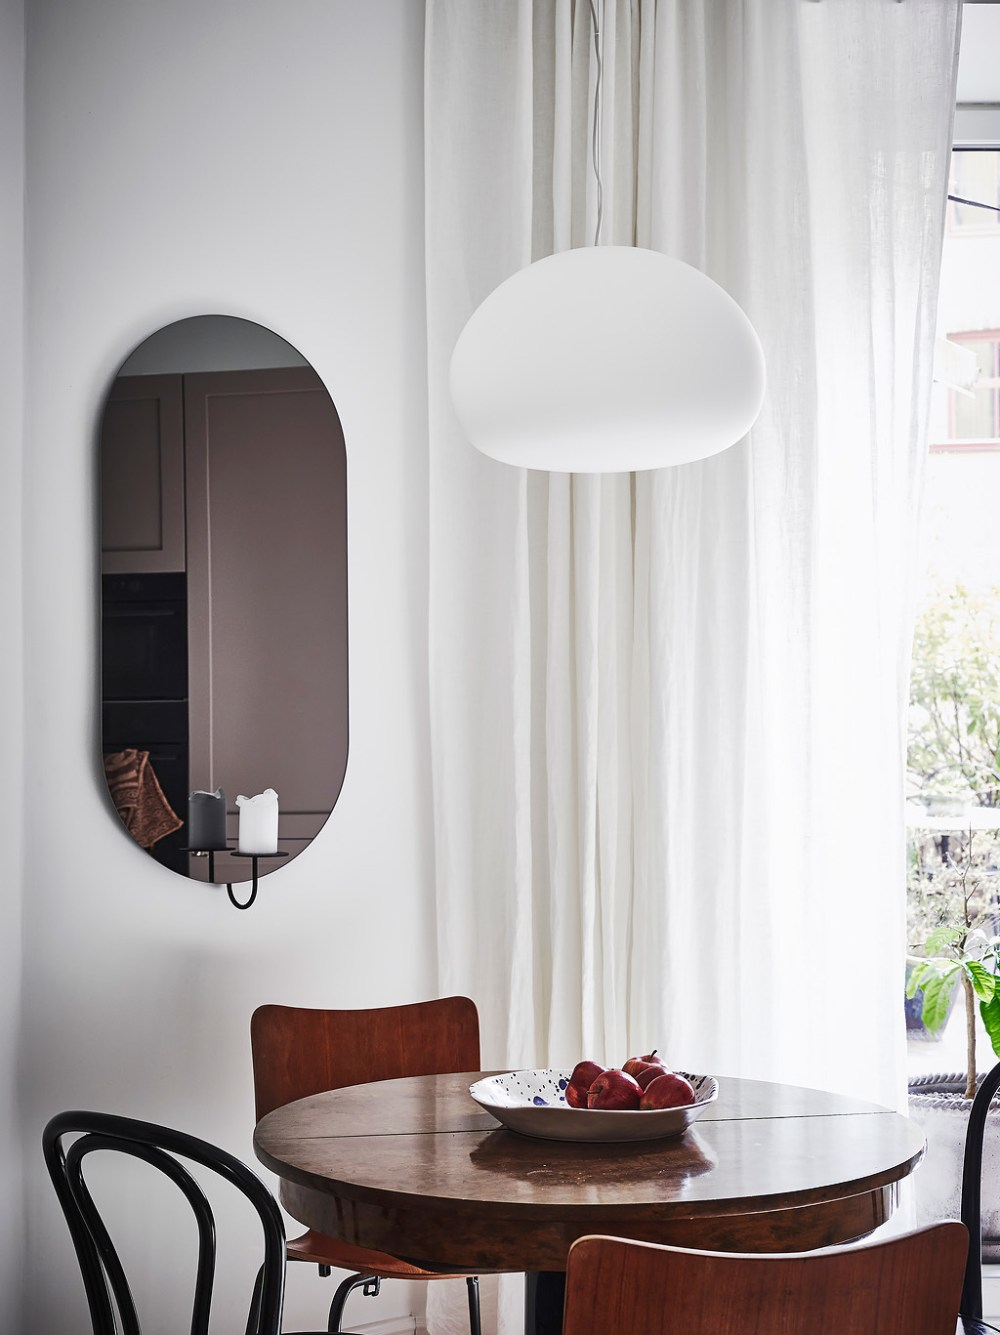 Kitchen lozenge mirror